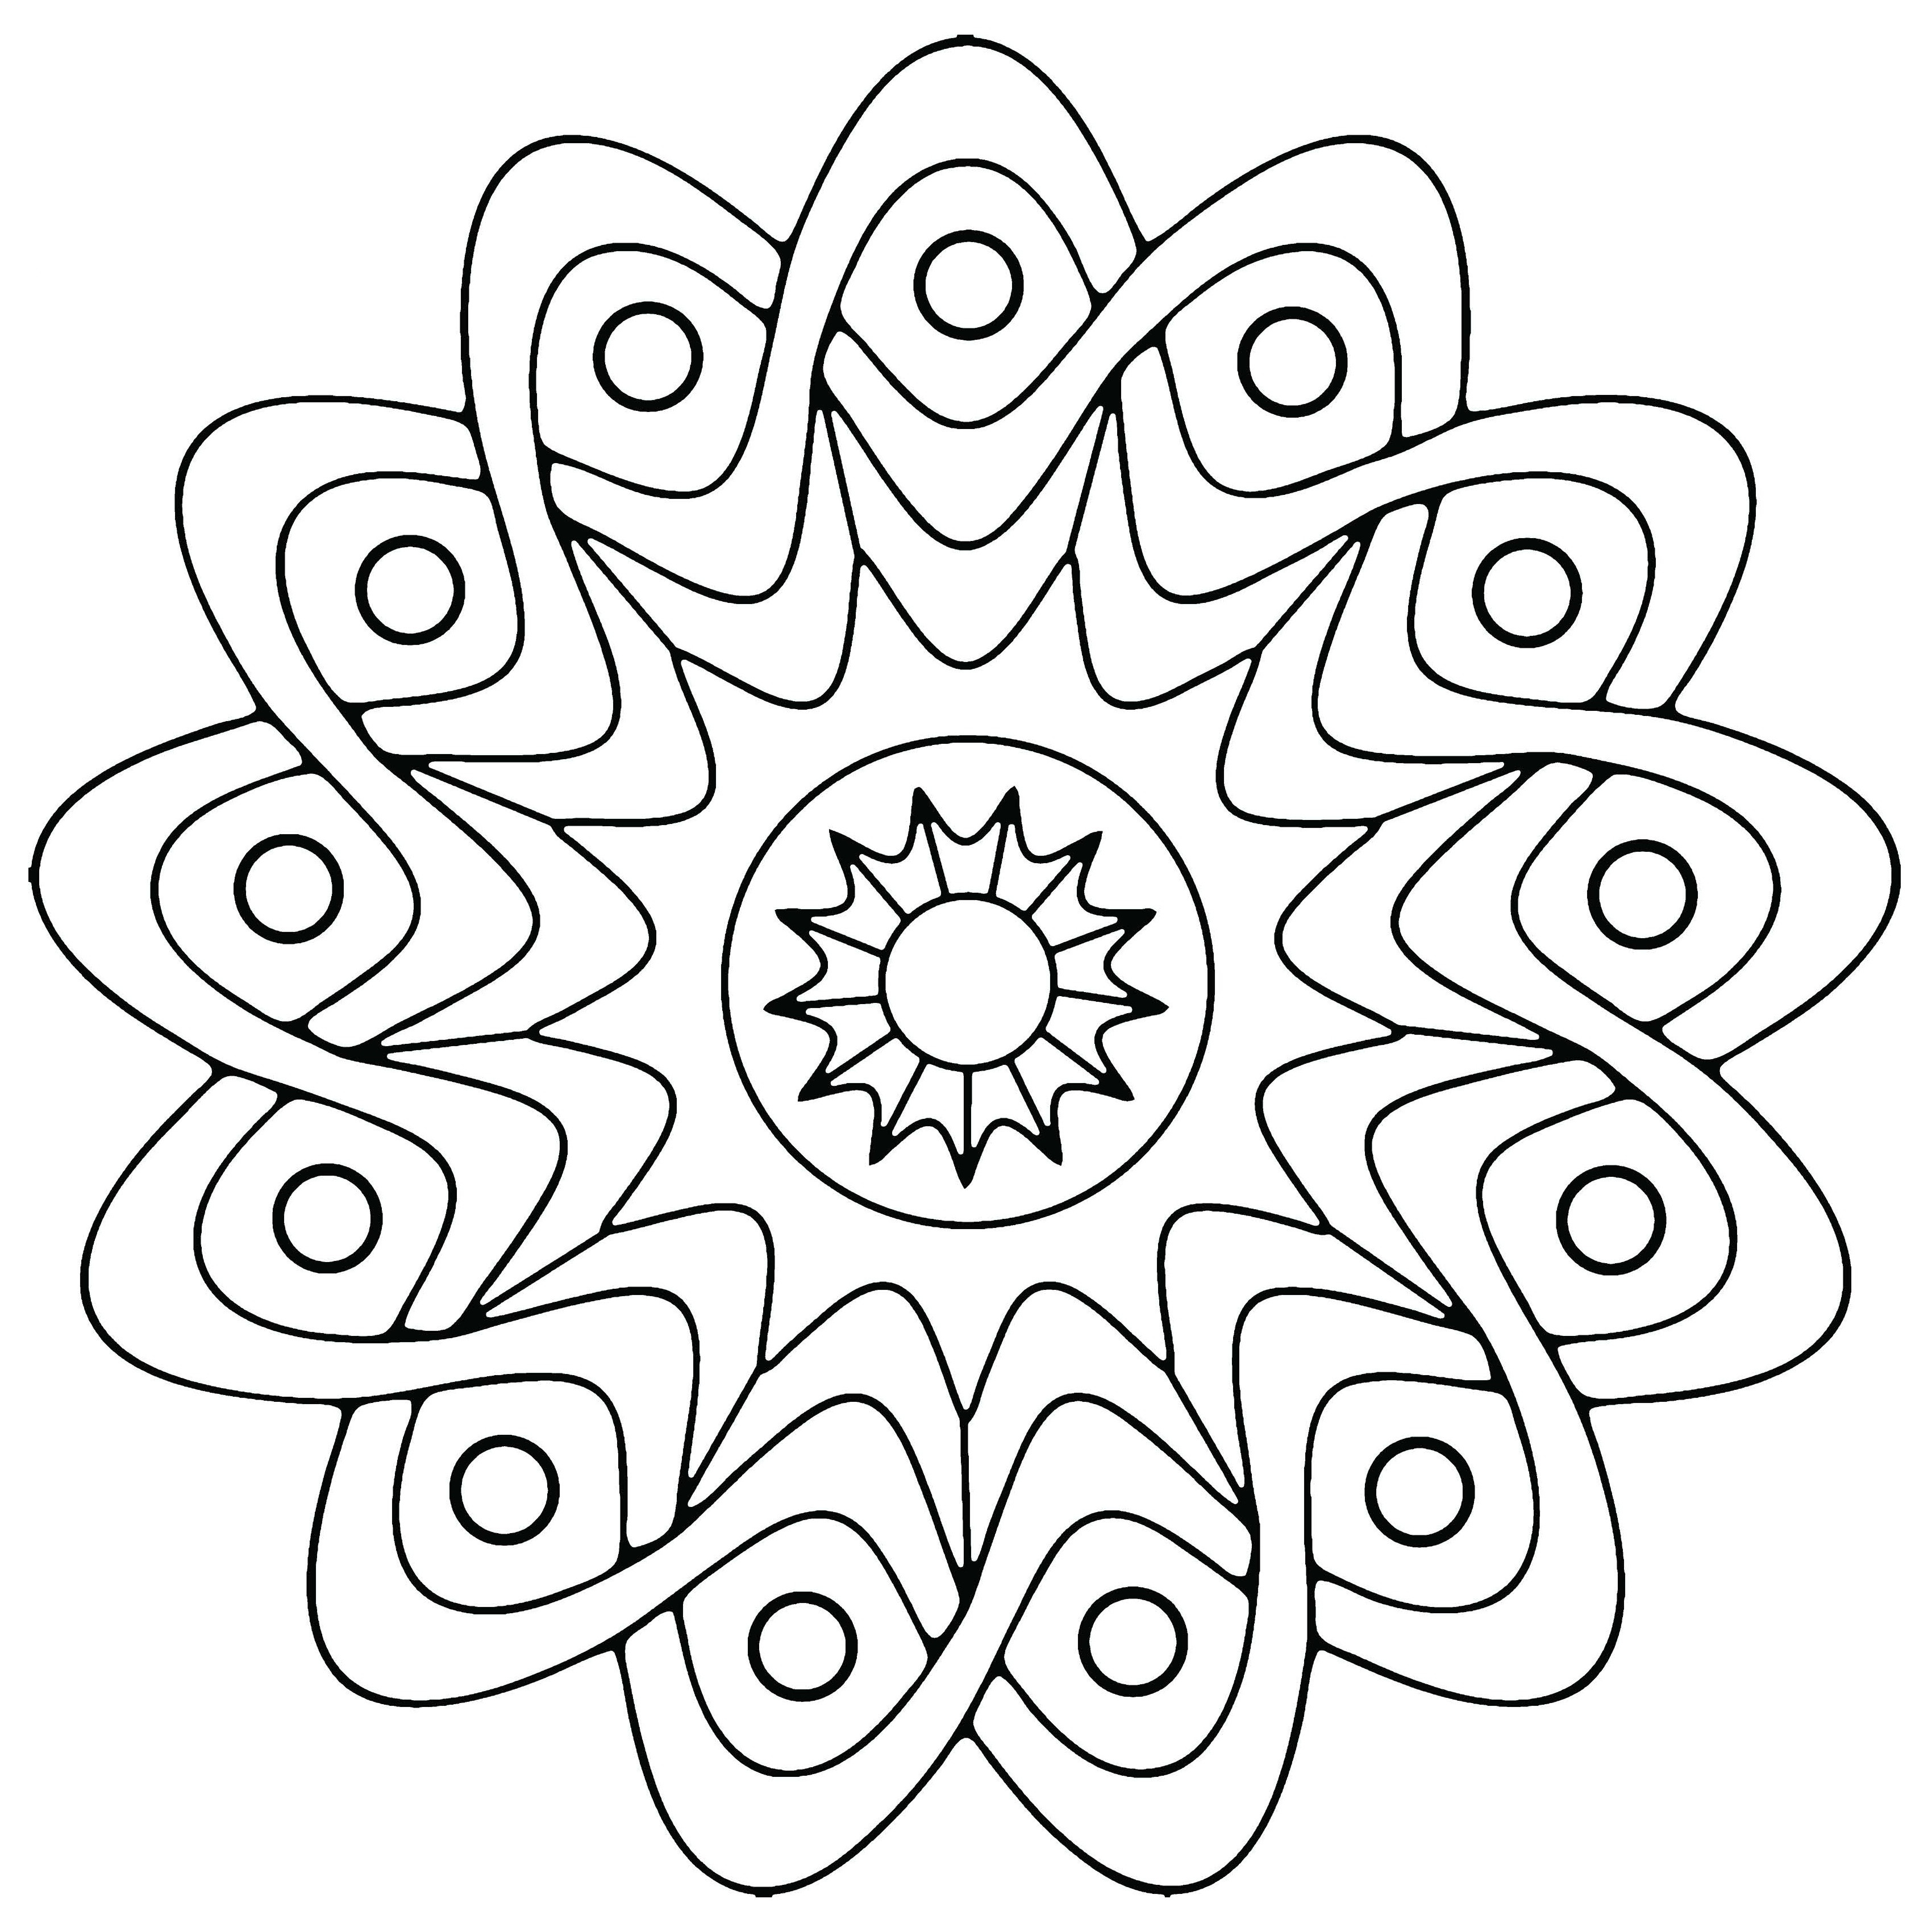 Best ideas about Easy Printable Coloring Pages For Adults . Save or Pin Free Printable Geometric Coloring Pages For Kids Now.